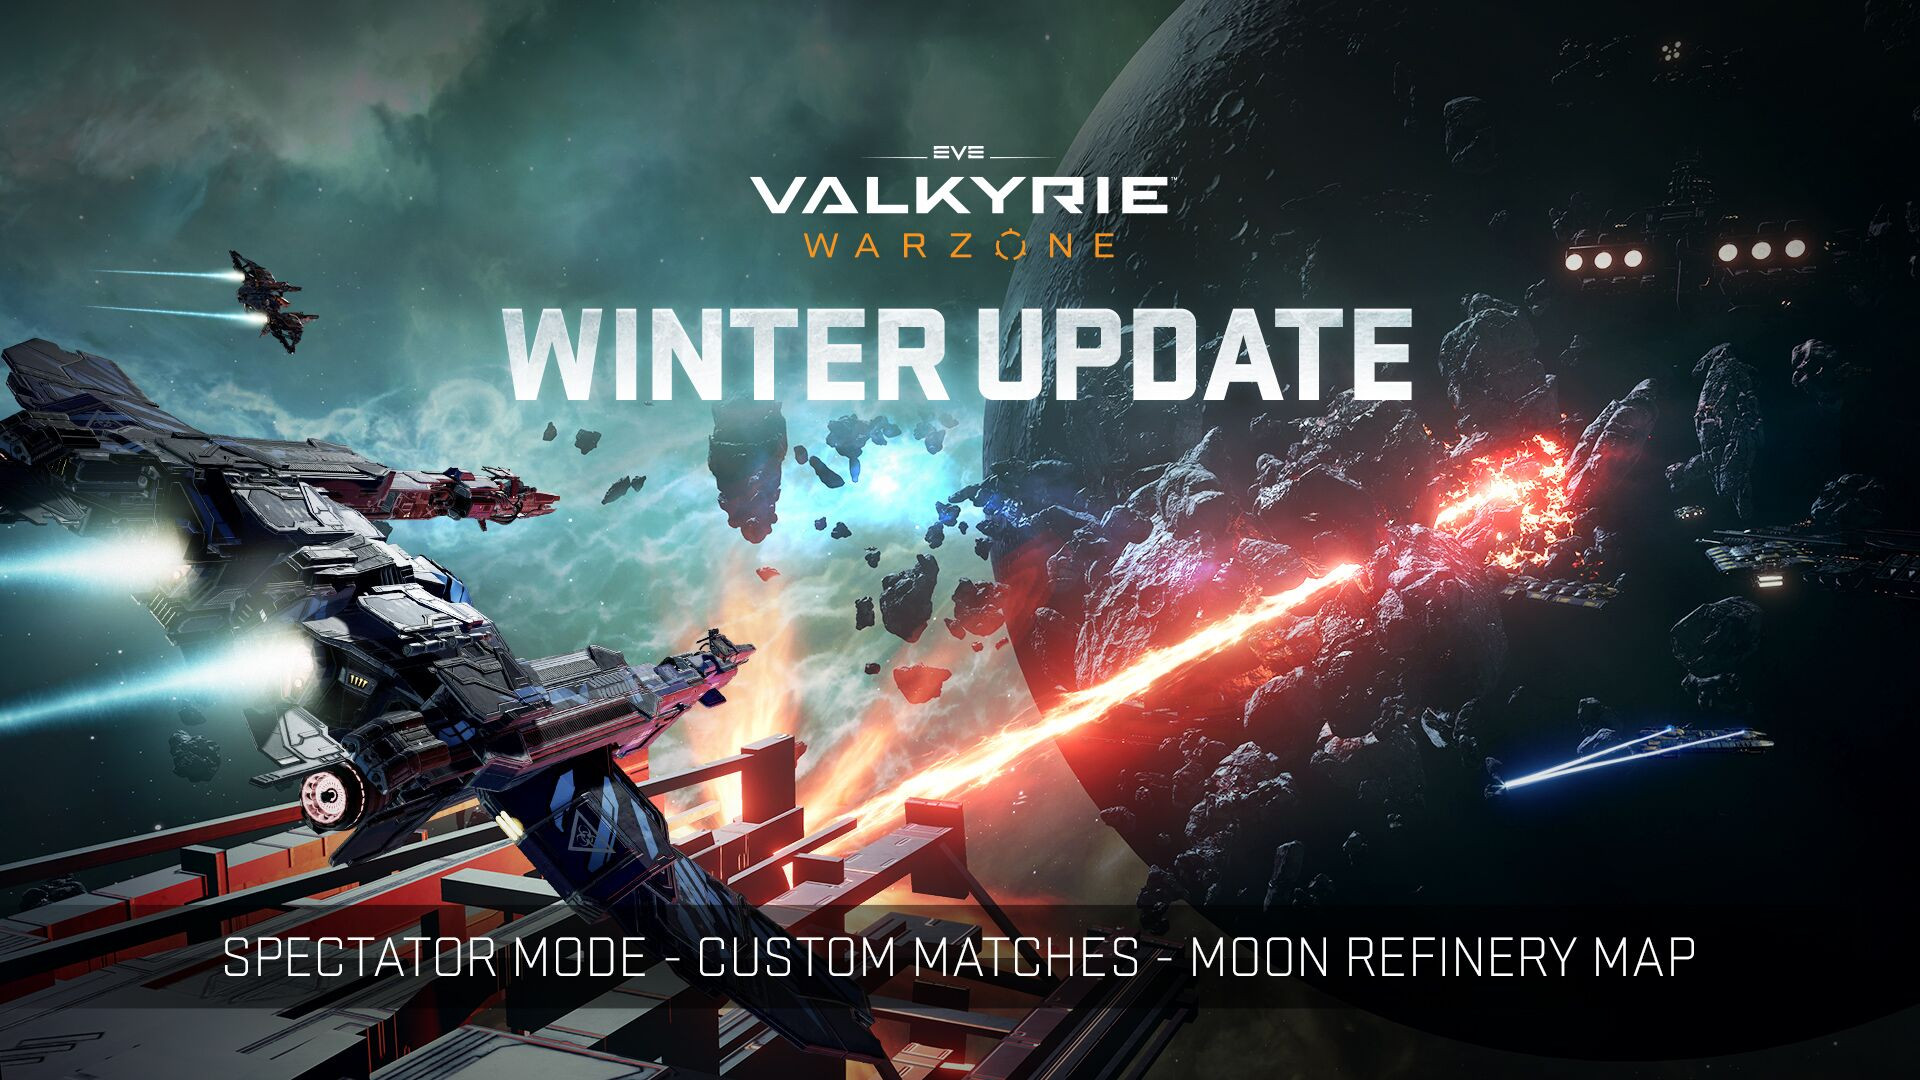 EVEValkyrie- Warzone Winter Update Key-Art preview